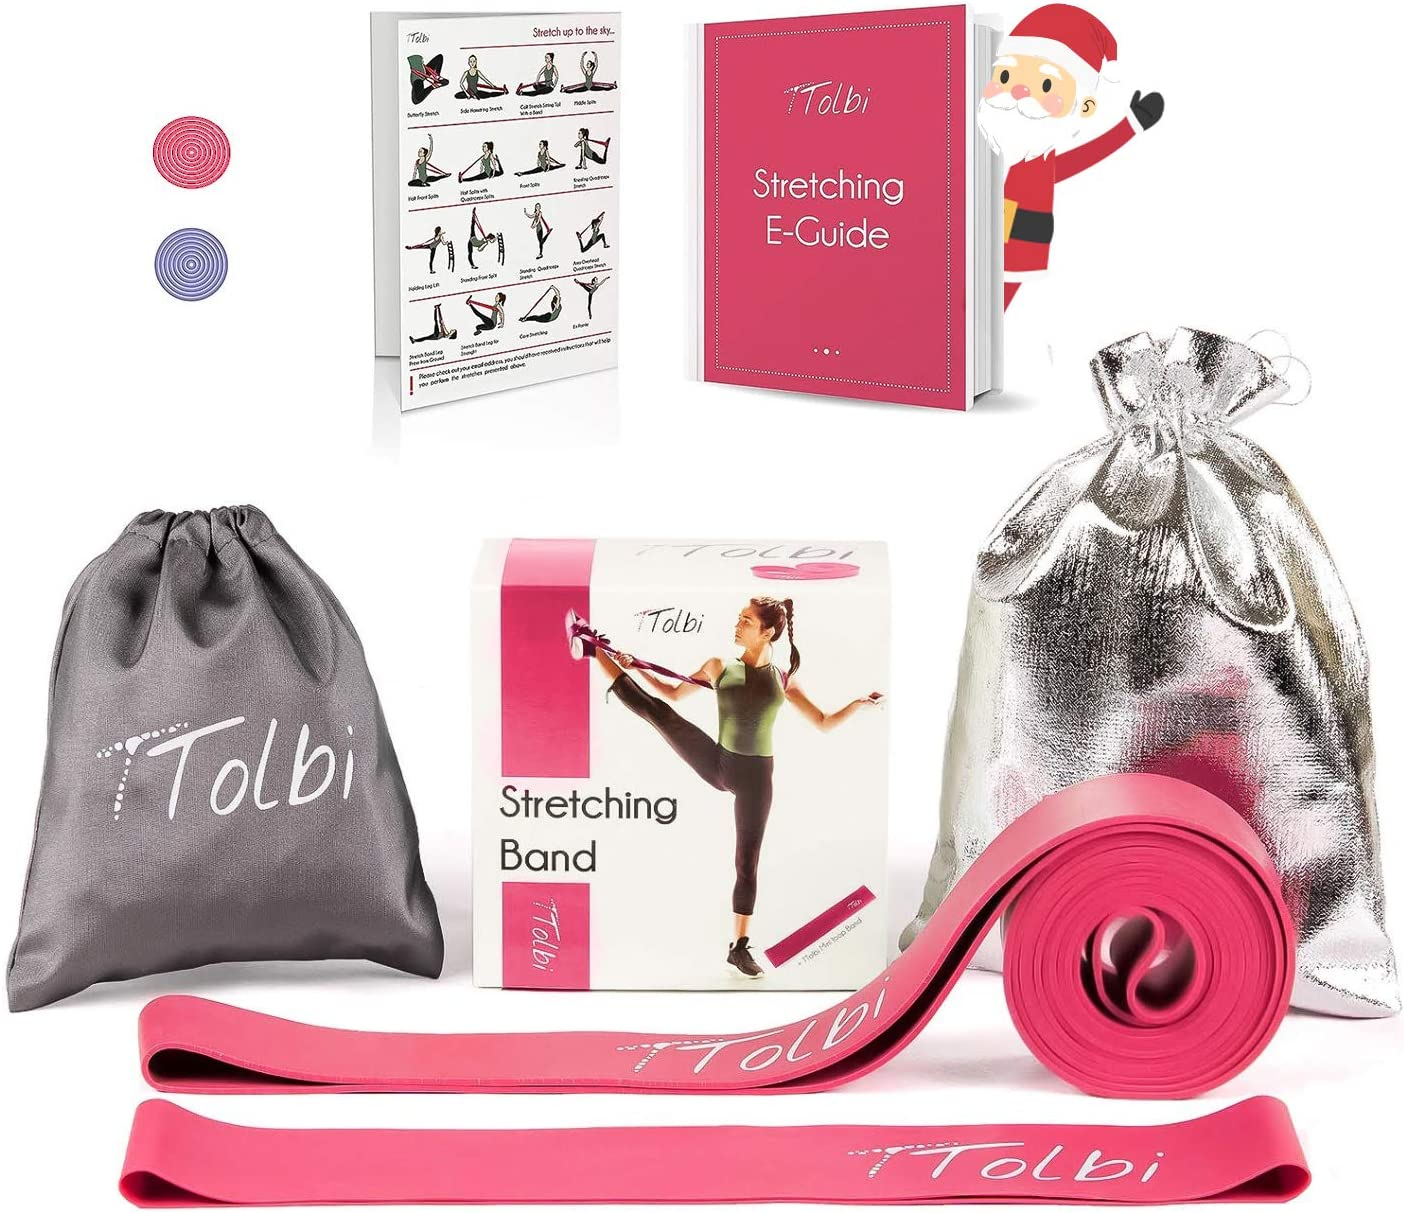 TTolbi Stretch Bands for Dancers, Ballerinas and Gymnasts | Dance Stretch Bands for Flexibility, Mobility and Strength | Shiny Bag, Travel Bag | Printed Stretches | Stretching E-Guide (Pink Regular) : Sports & Outdoors